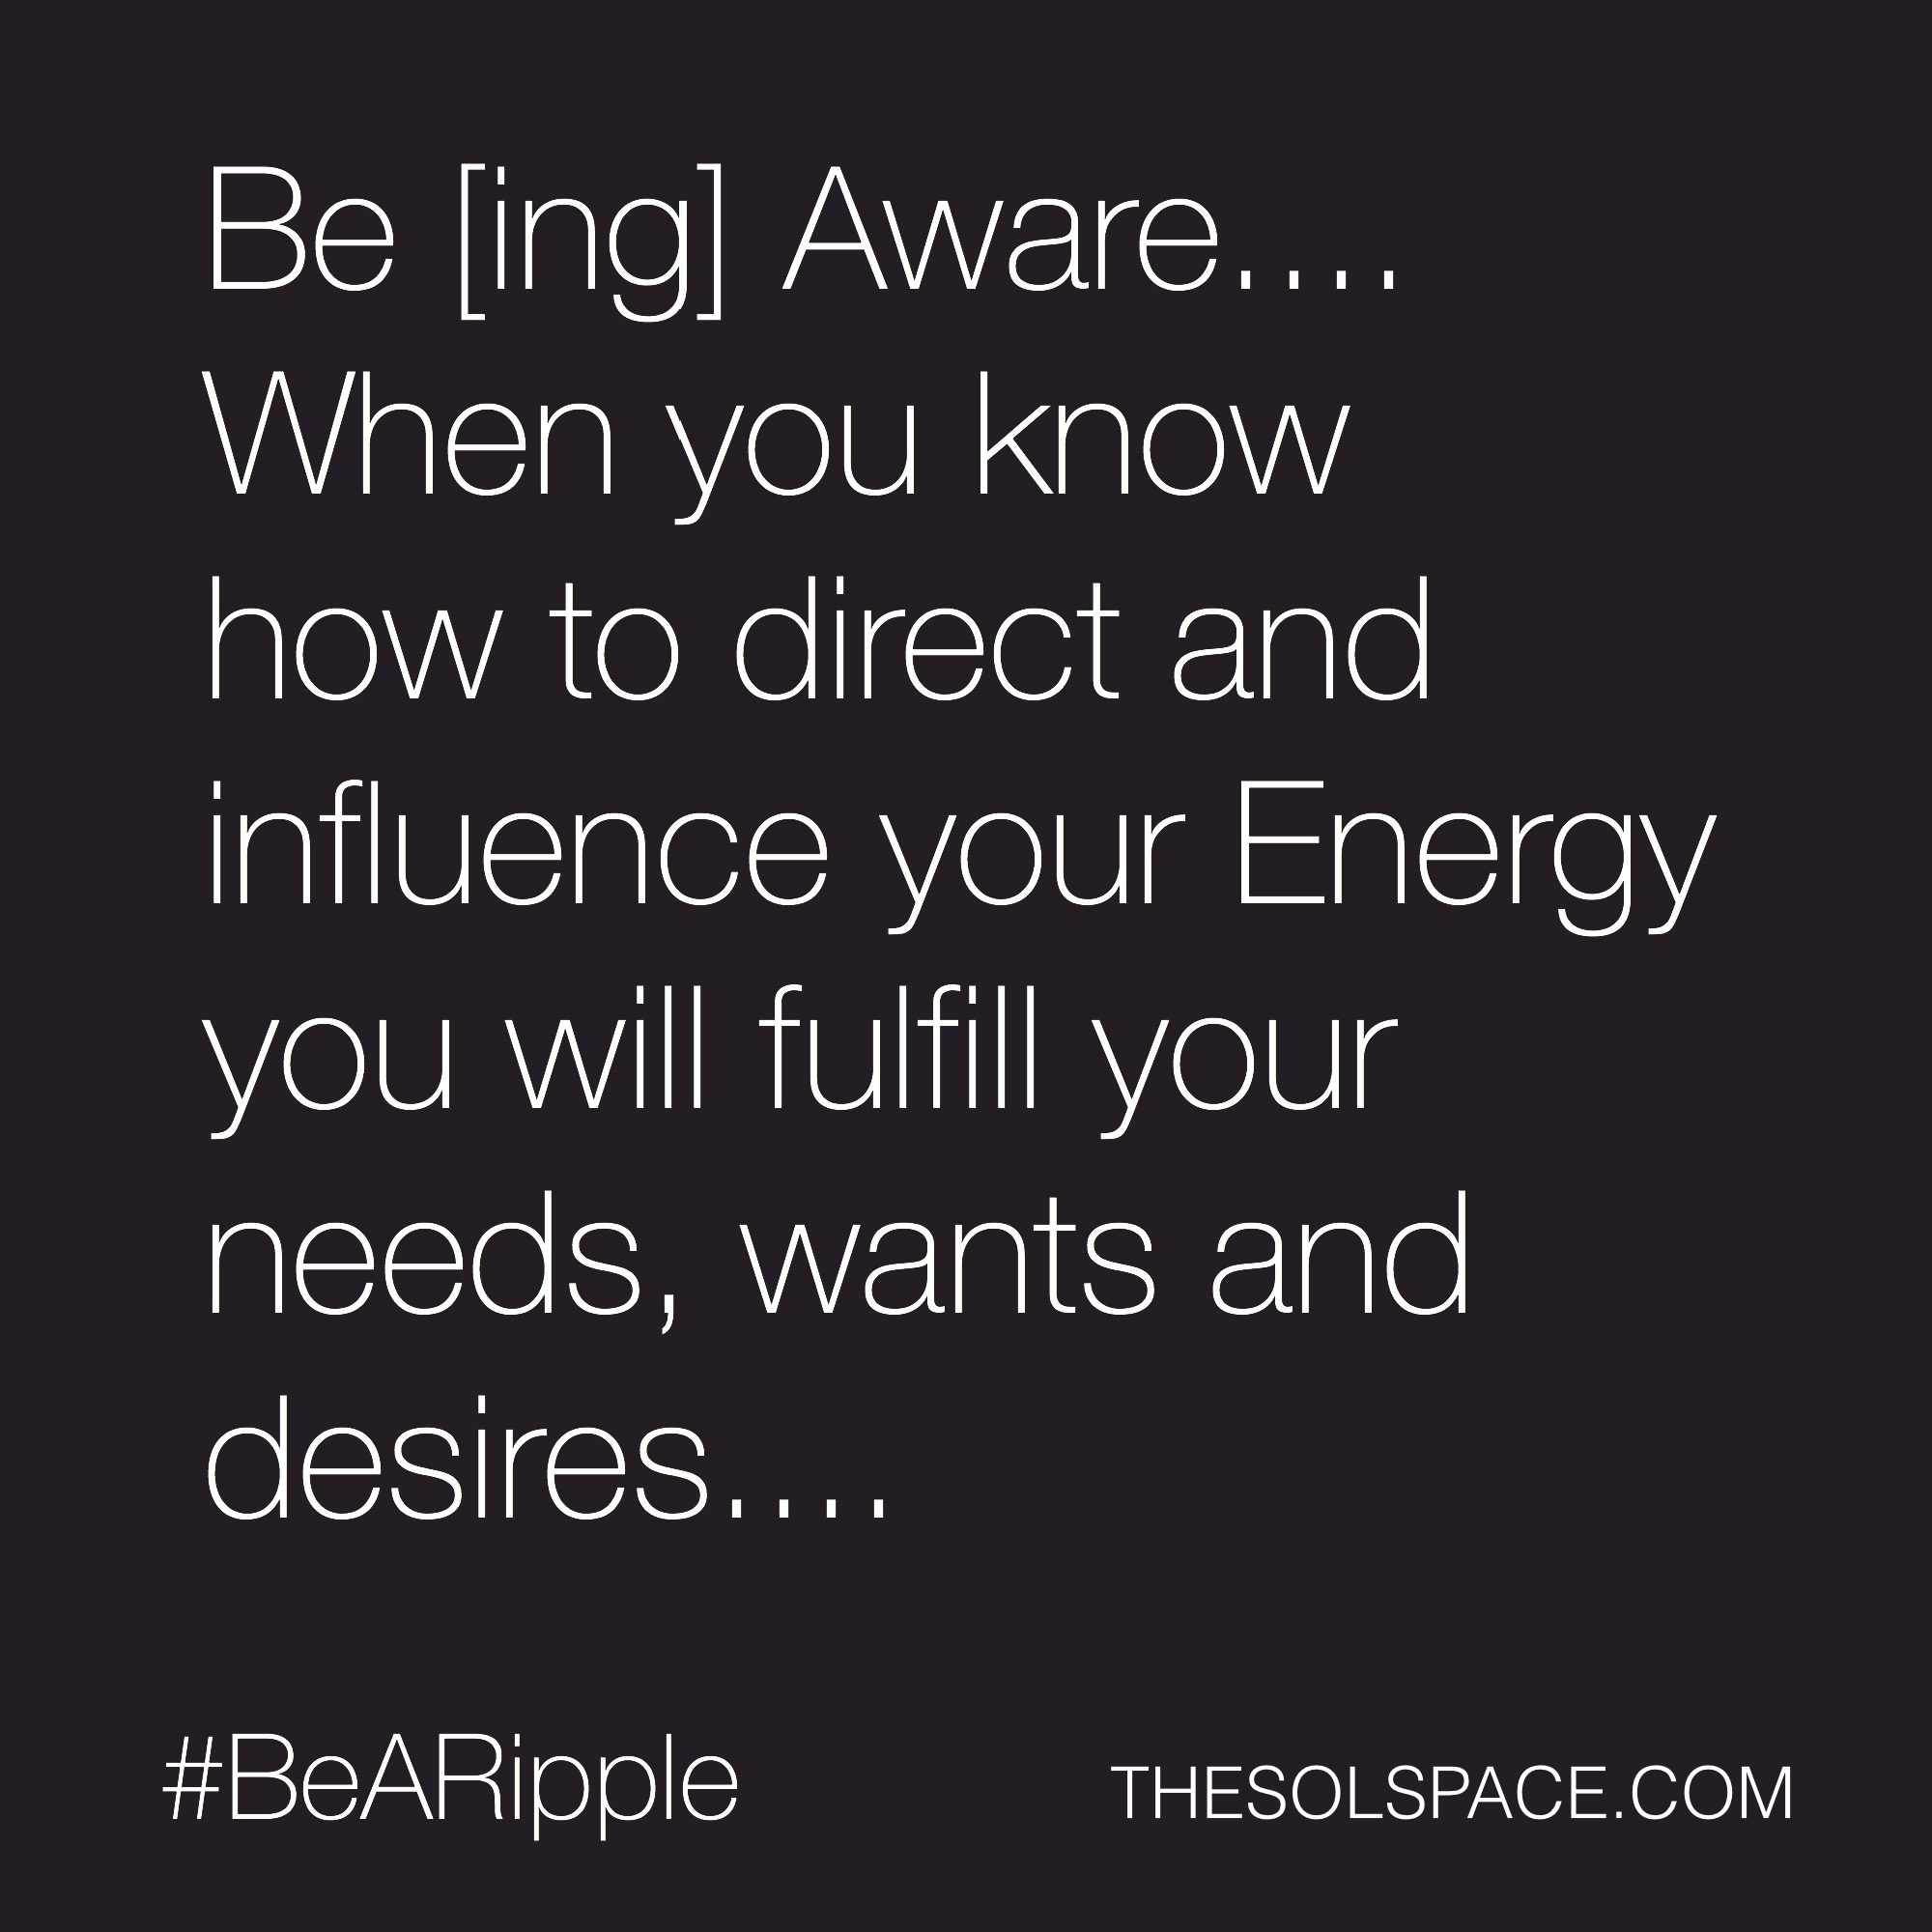 #BeARipple...When you know how to direct and influence your energy you will fulfil you needs and desires @theSOLspace